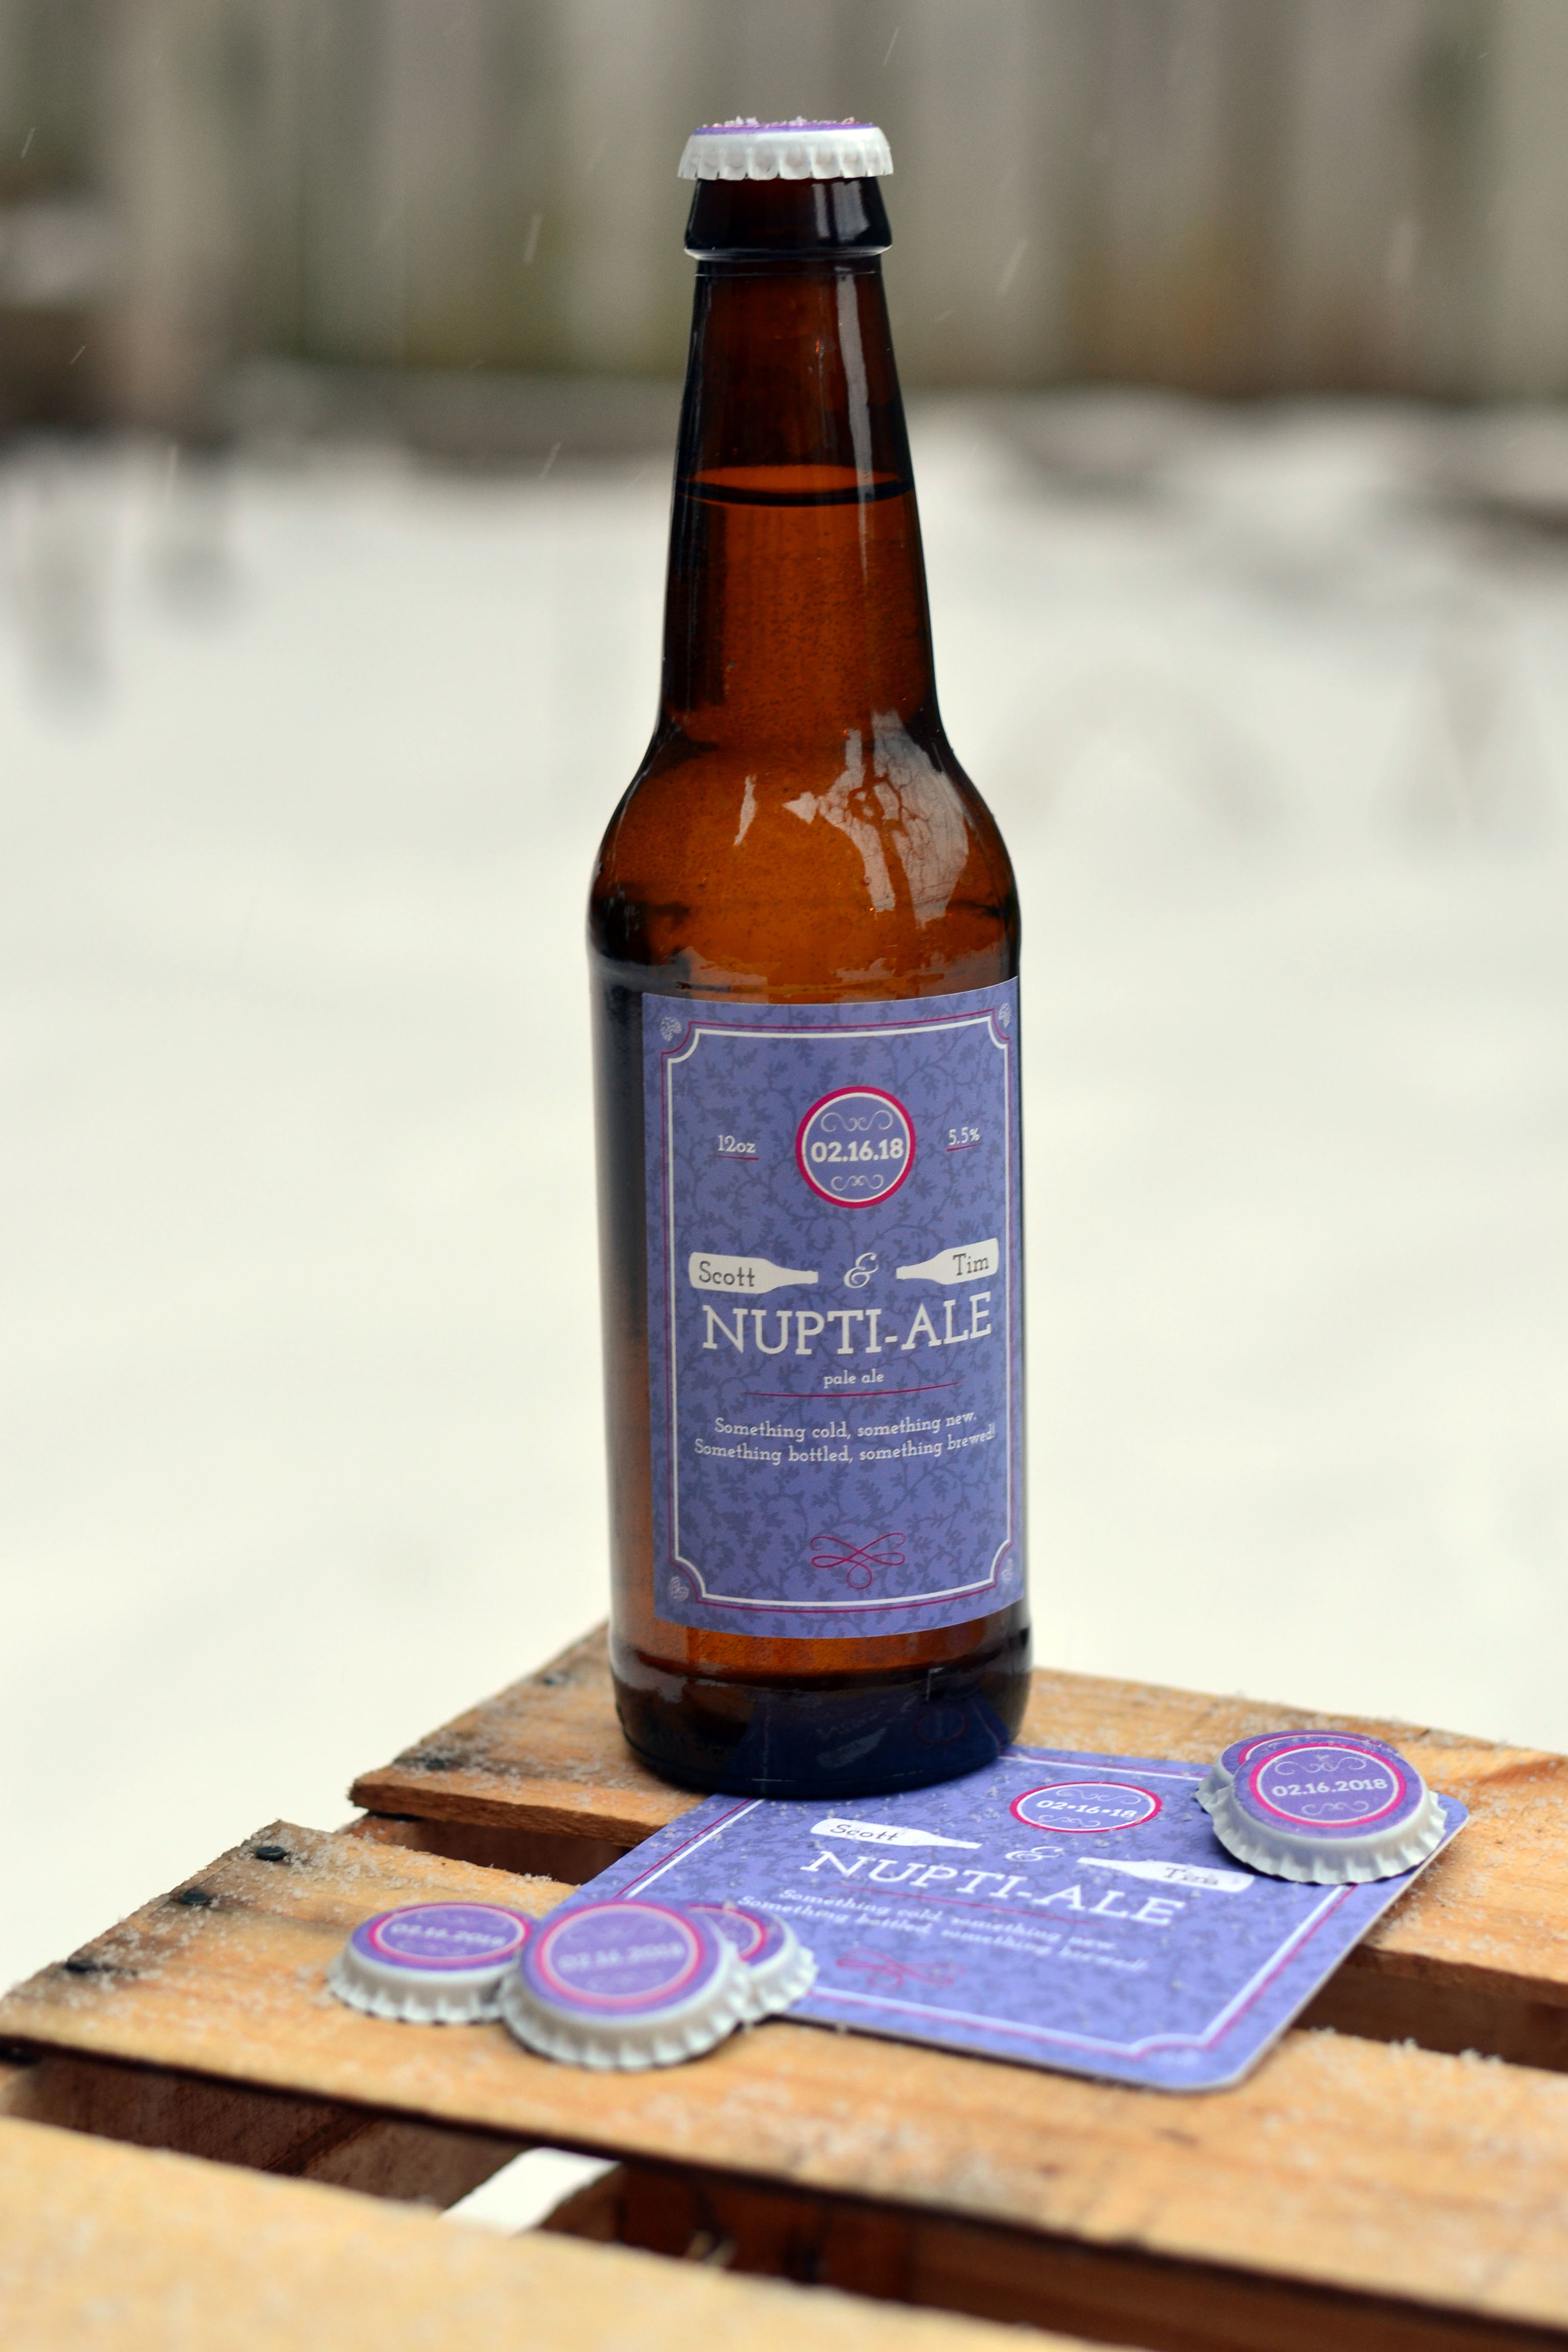 howard_street_brewing_company_nupti_ale.jpg